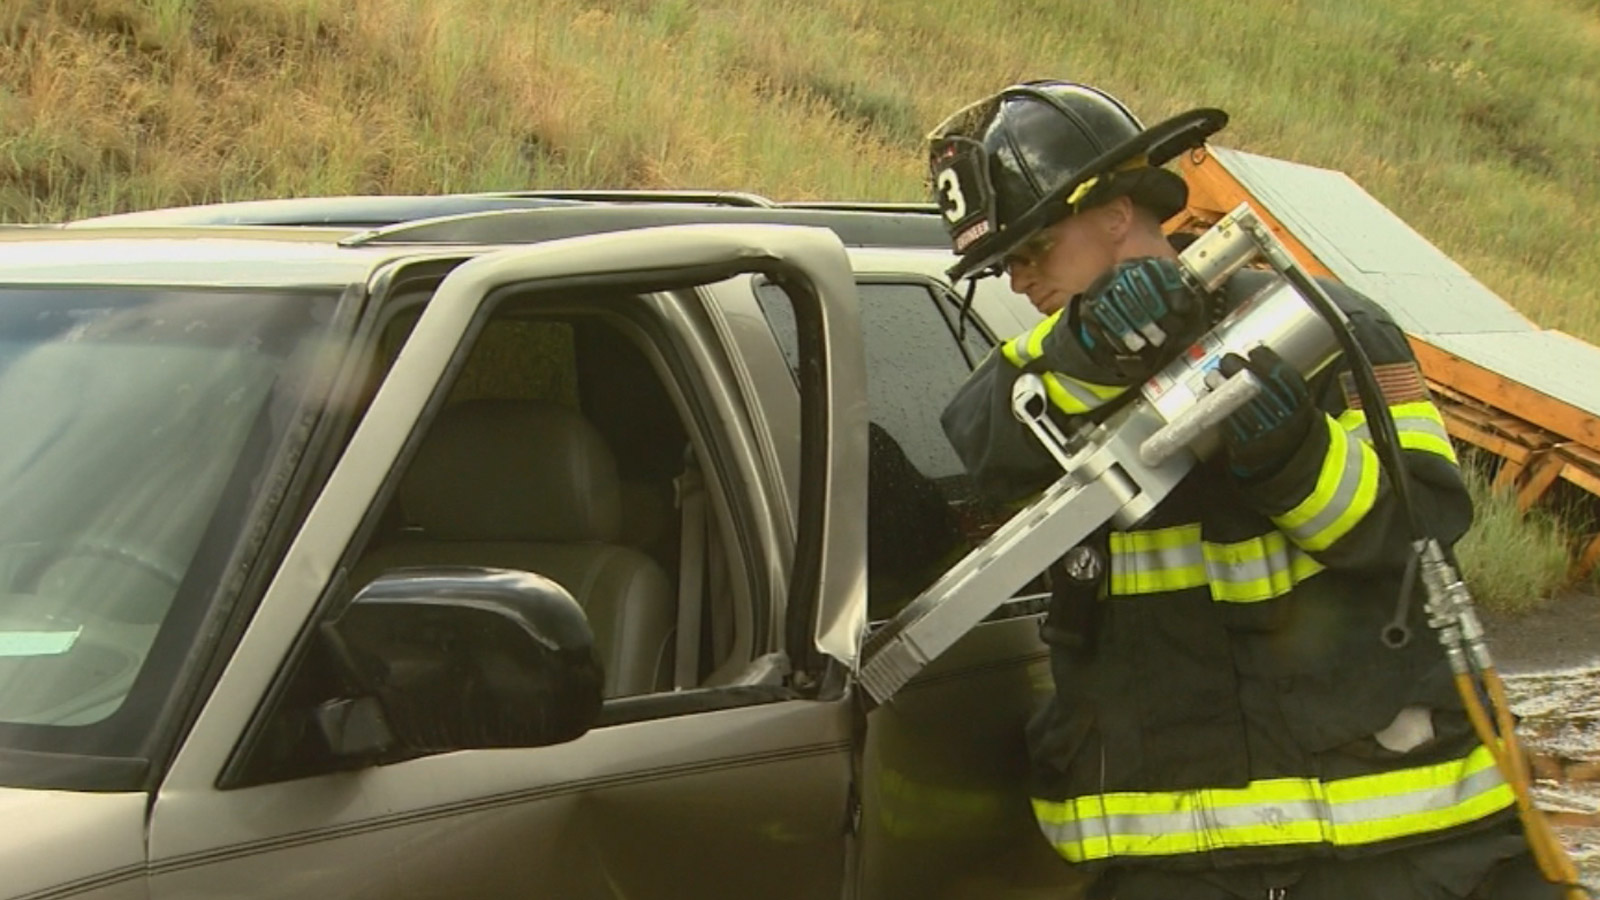 Firefighters in Vail tested the Jaws of Life tool (credit: CBS)